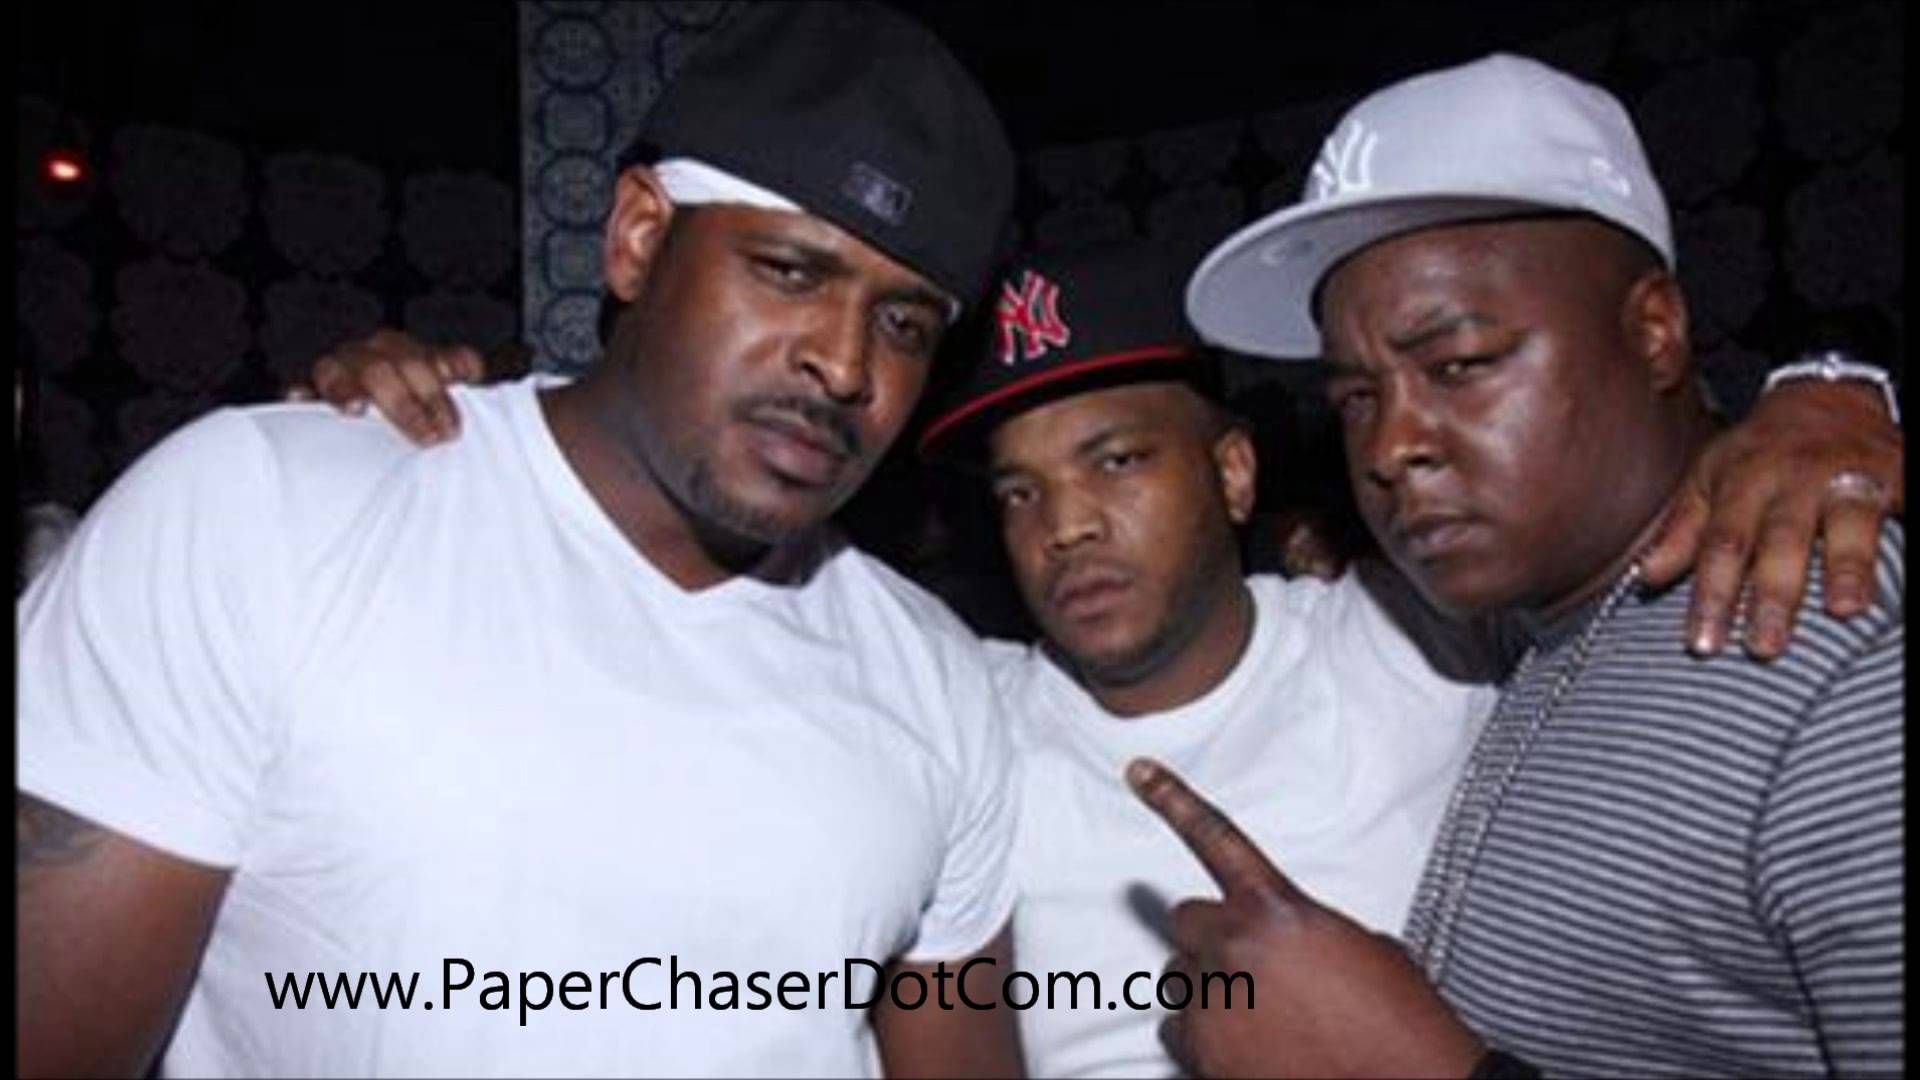 NEW>>The Lox Ft  Chris Brown - Sweet Serenade (Freestyle